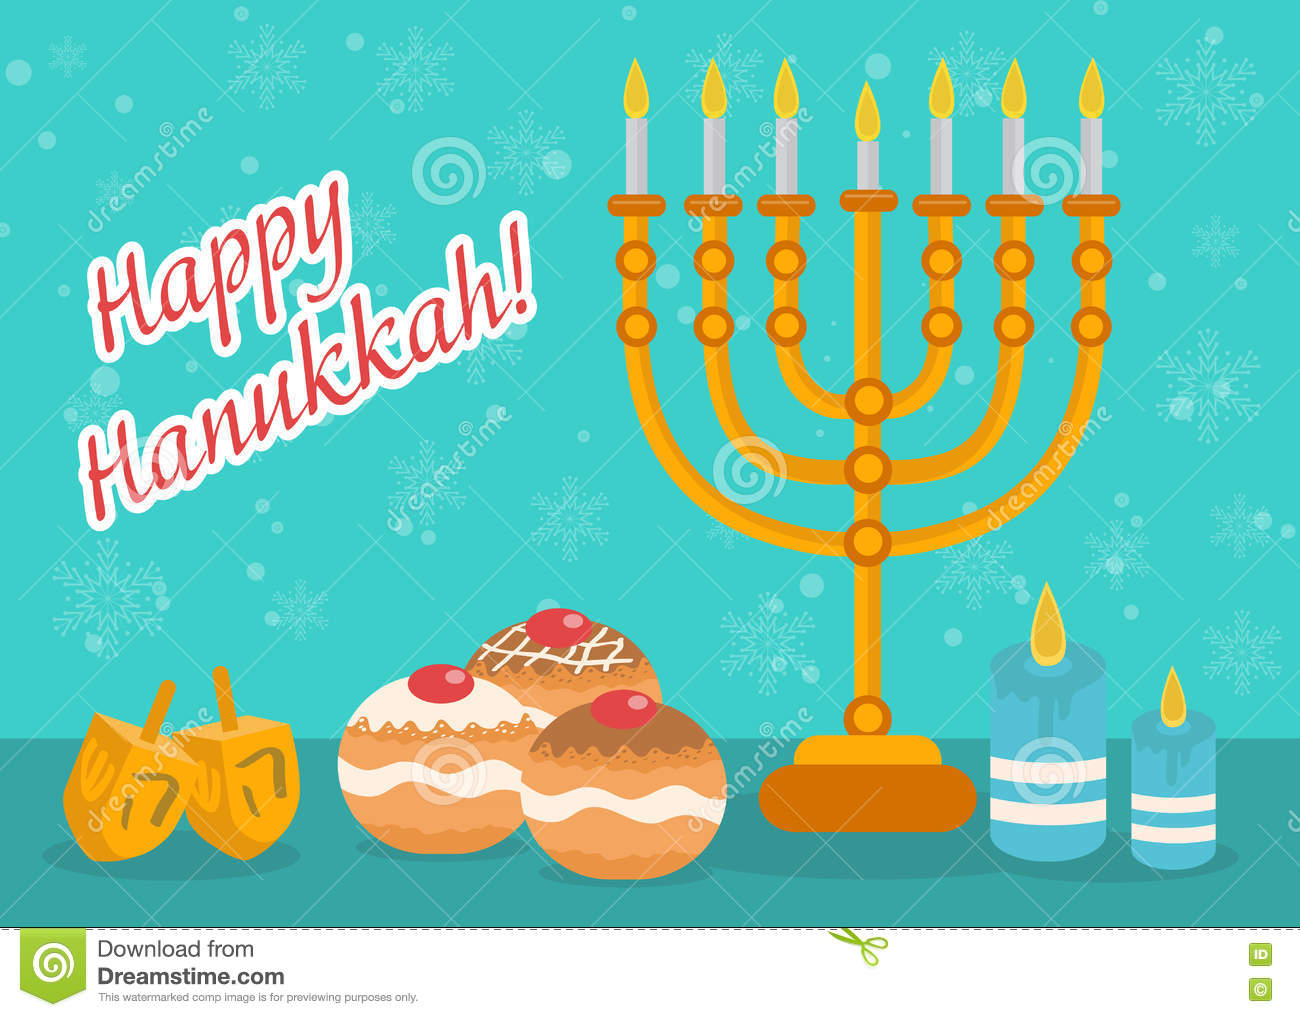 Happy hanukkah greeting card invitation poster hanukkah jewish download happy hanukkah greeting card invitation poster hanukkah jewish festival of lights stock m4hsunfo